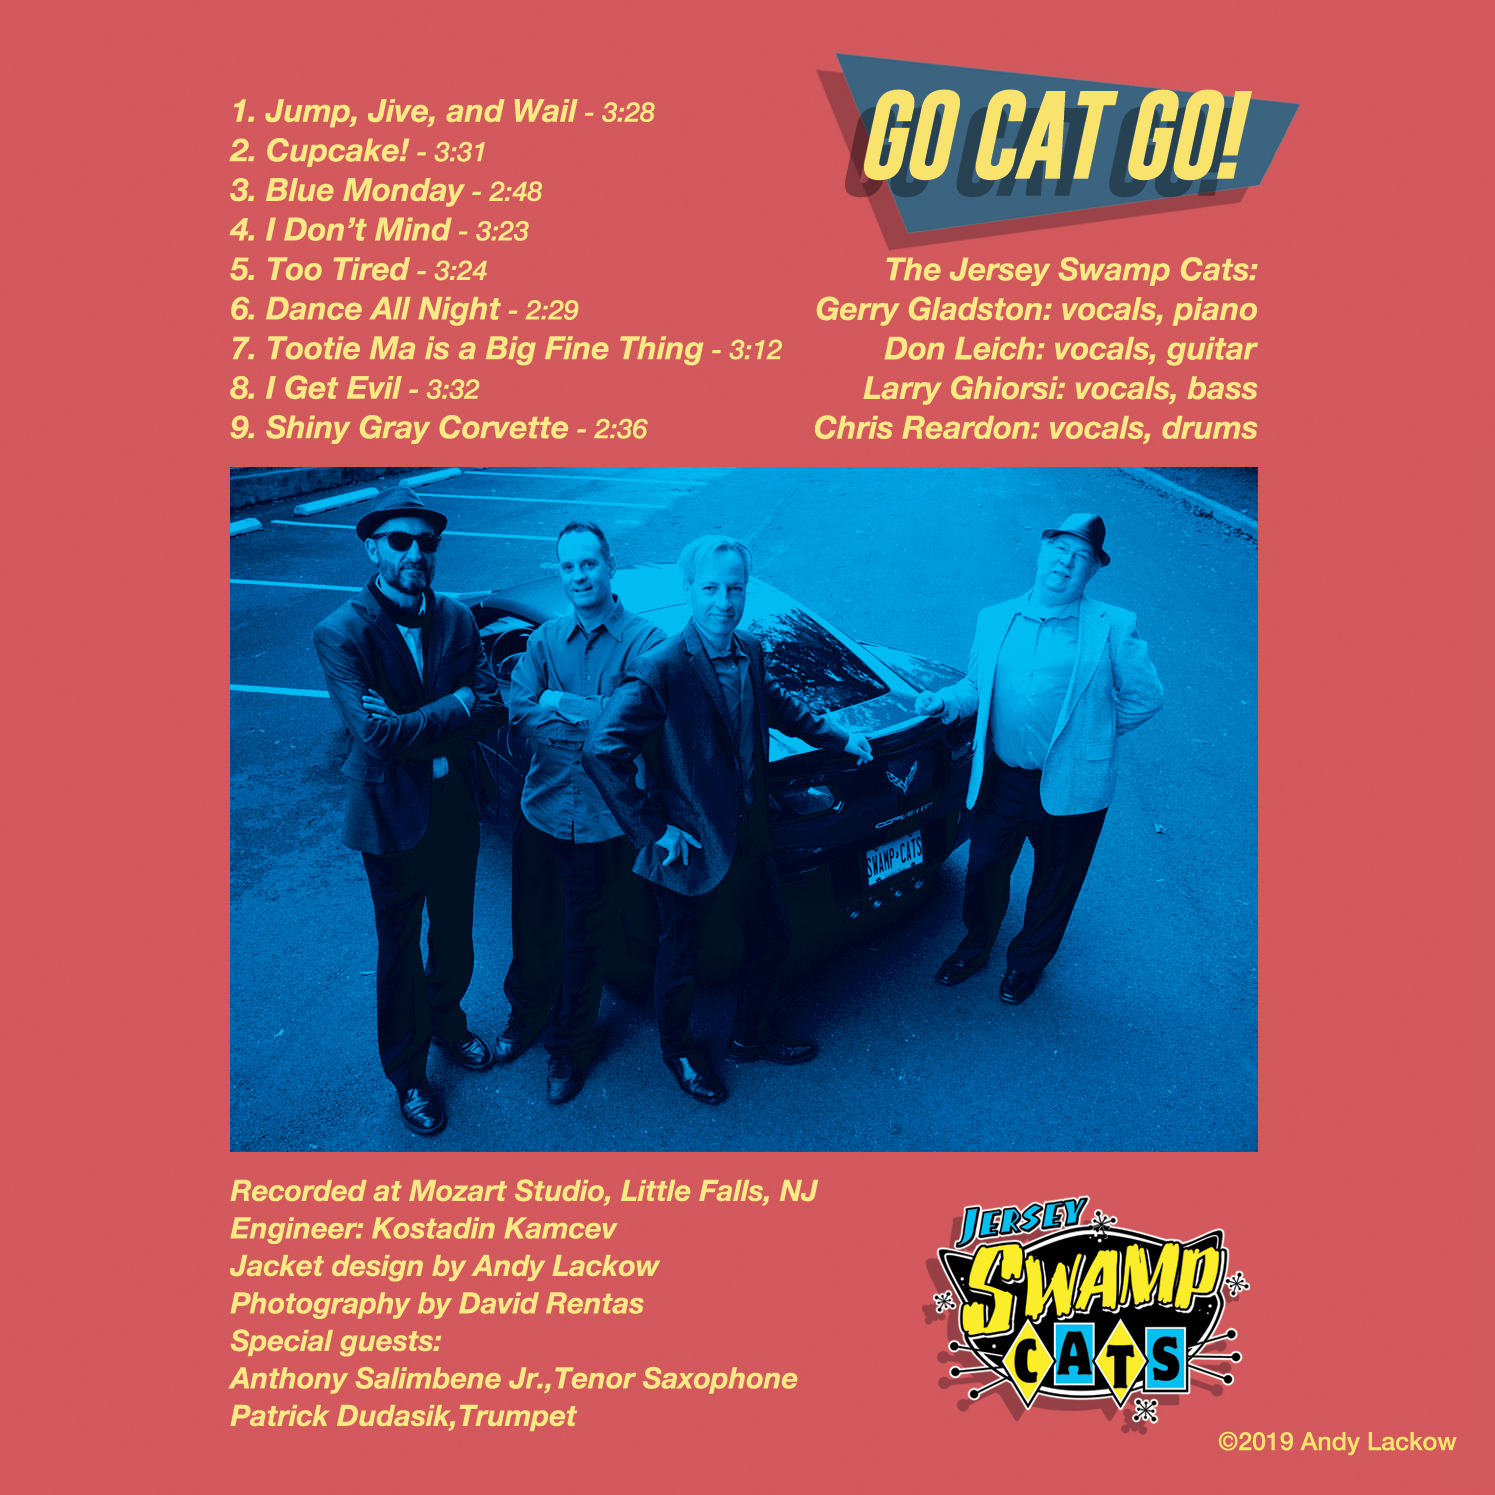 Go Cat Go CD Back Cover